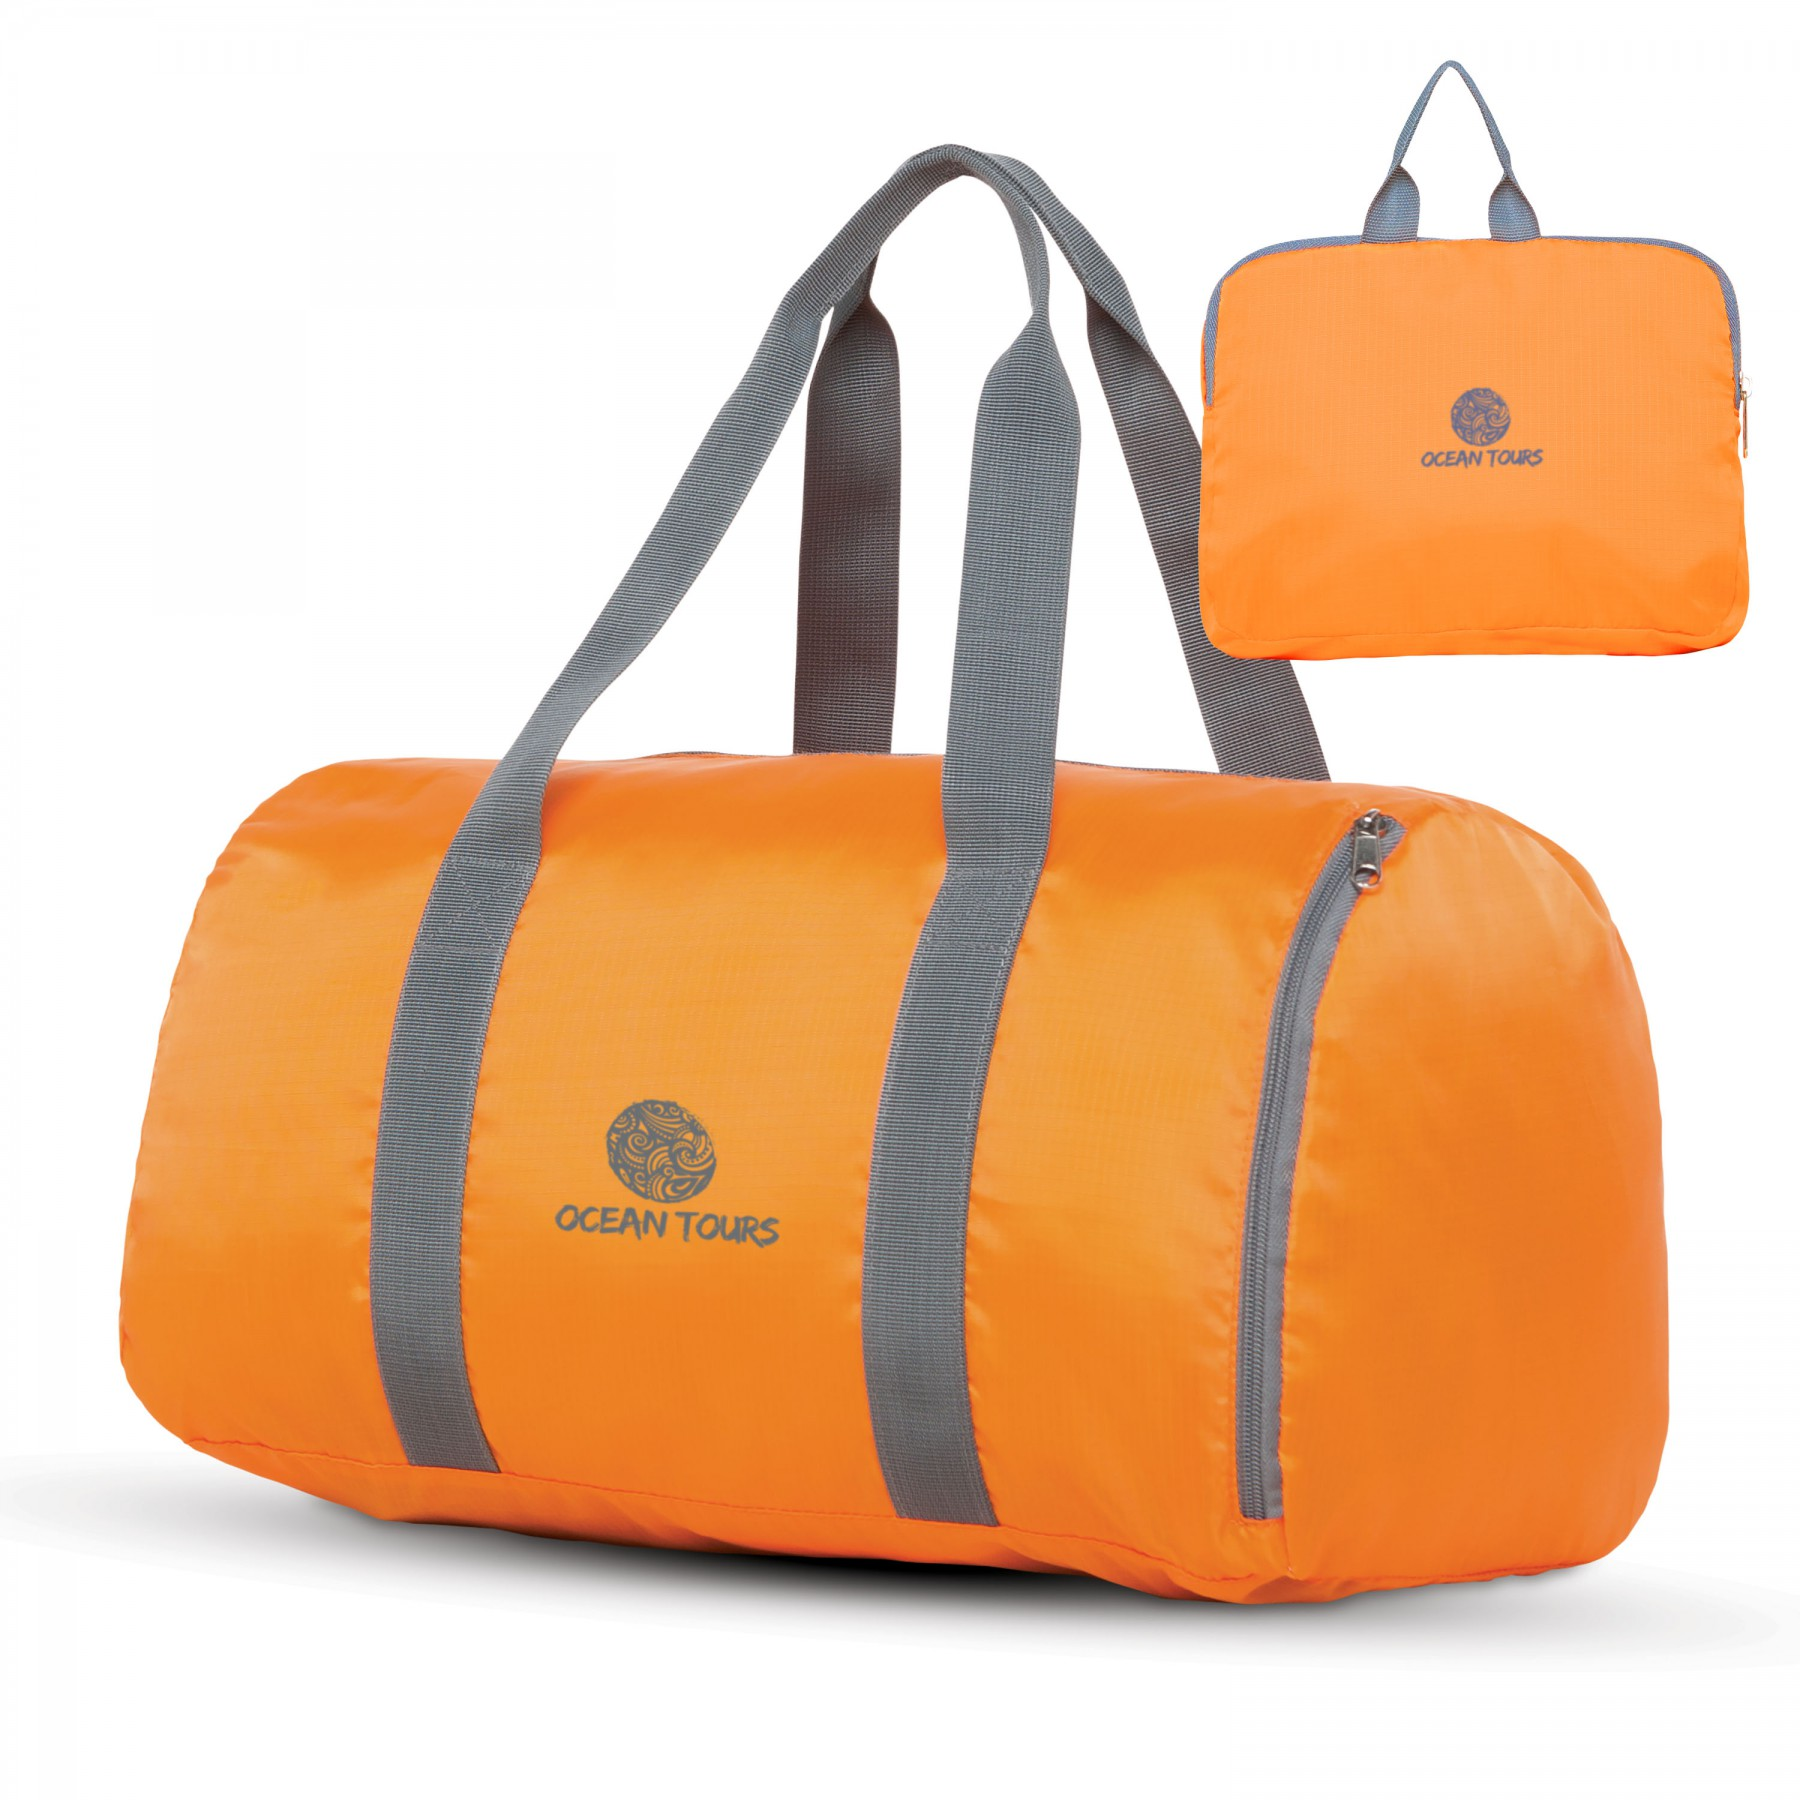 Make It Pop Packable Duffle, BG202, One Colour Imprint